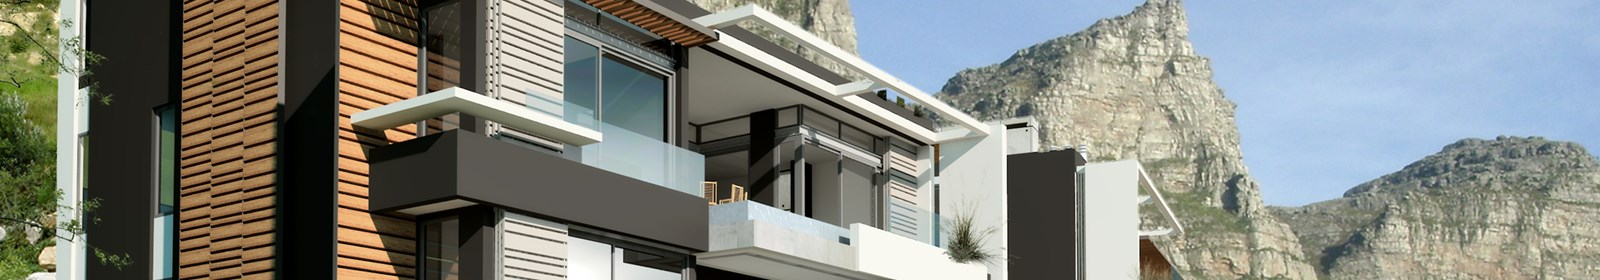 Atlantic Seaboard property prices surge